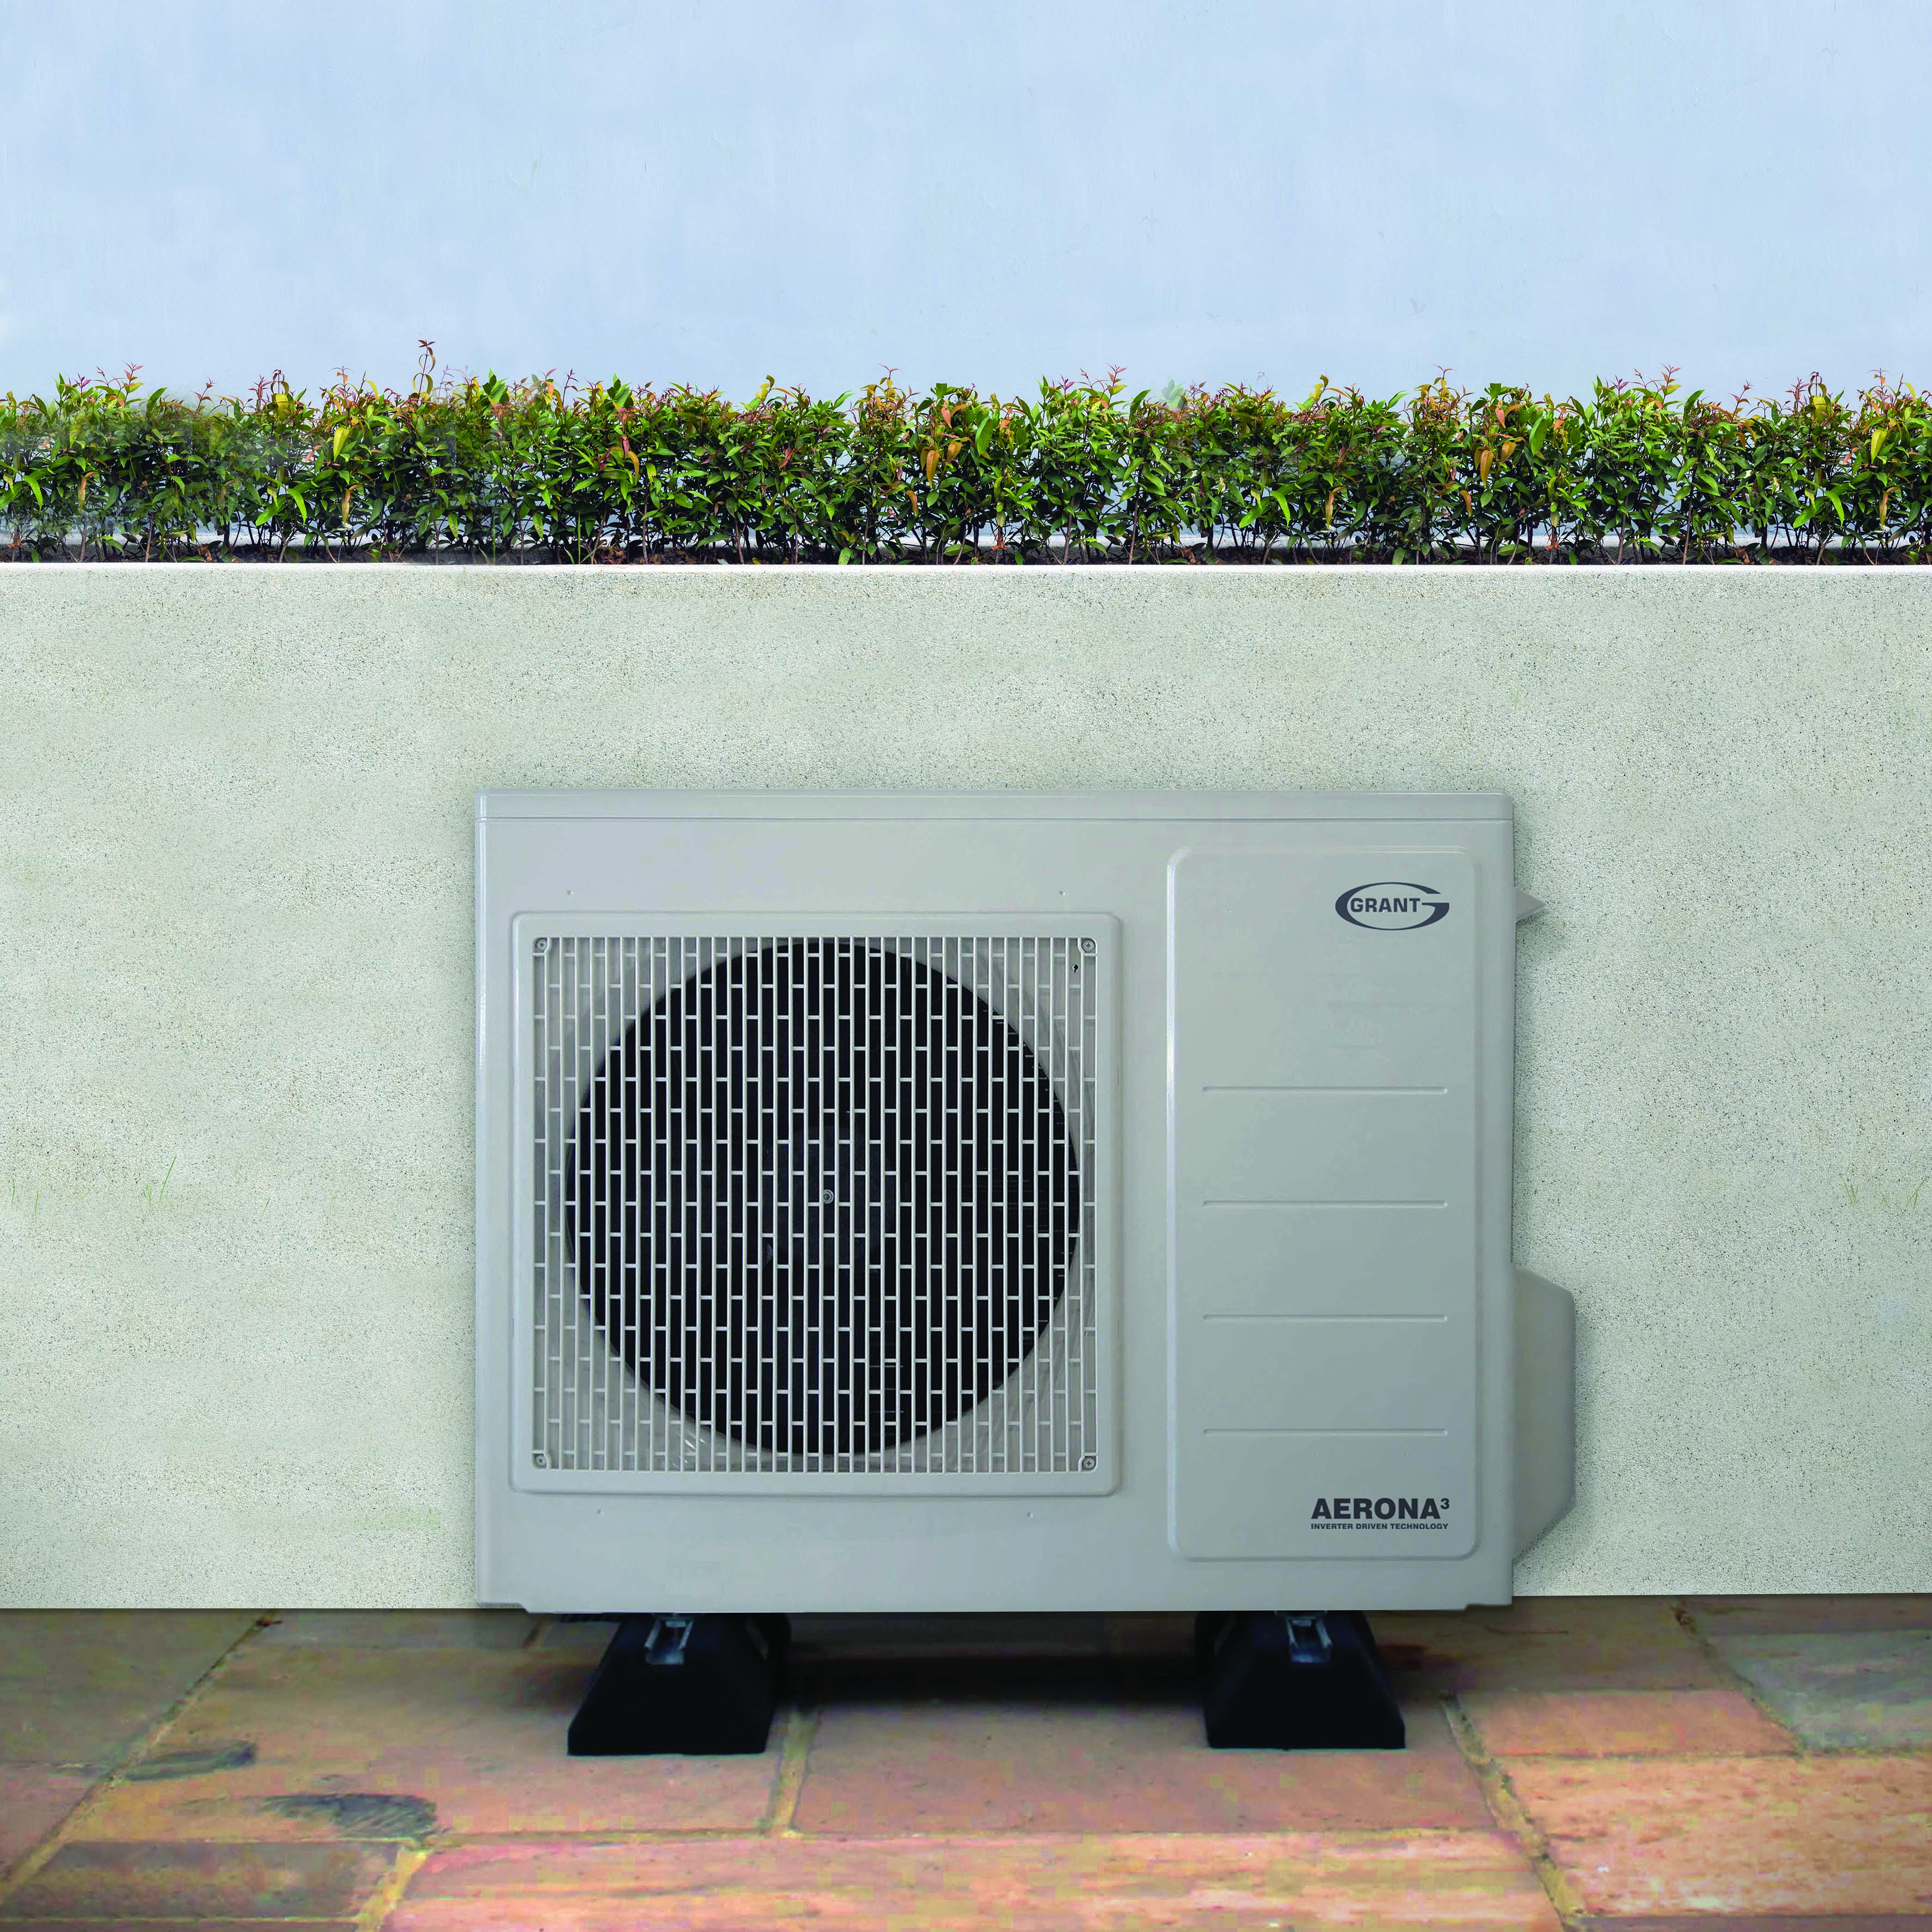 Air Source Heat Pump metering requirements for Domestic RHI Scheme